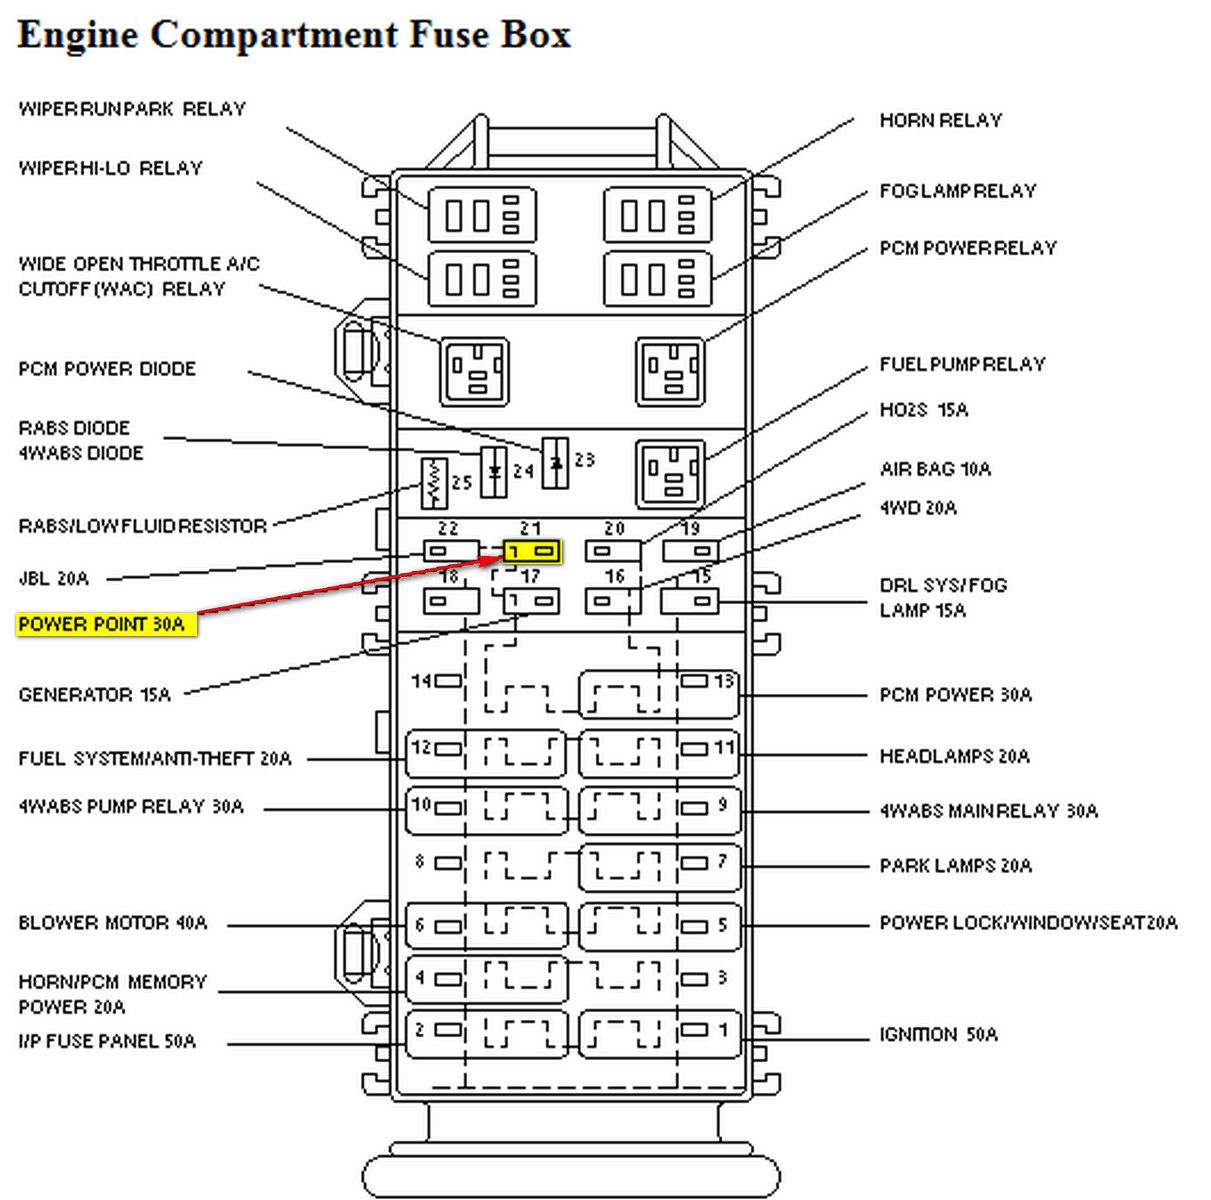 hight resolution of 2002 ford ranger fuse diagram 1997 ford ranger fuse box diagram2002 ford ranger fuse diagram 1997